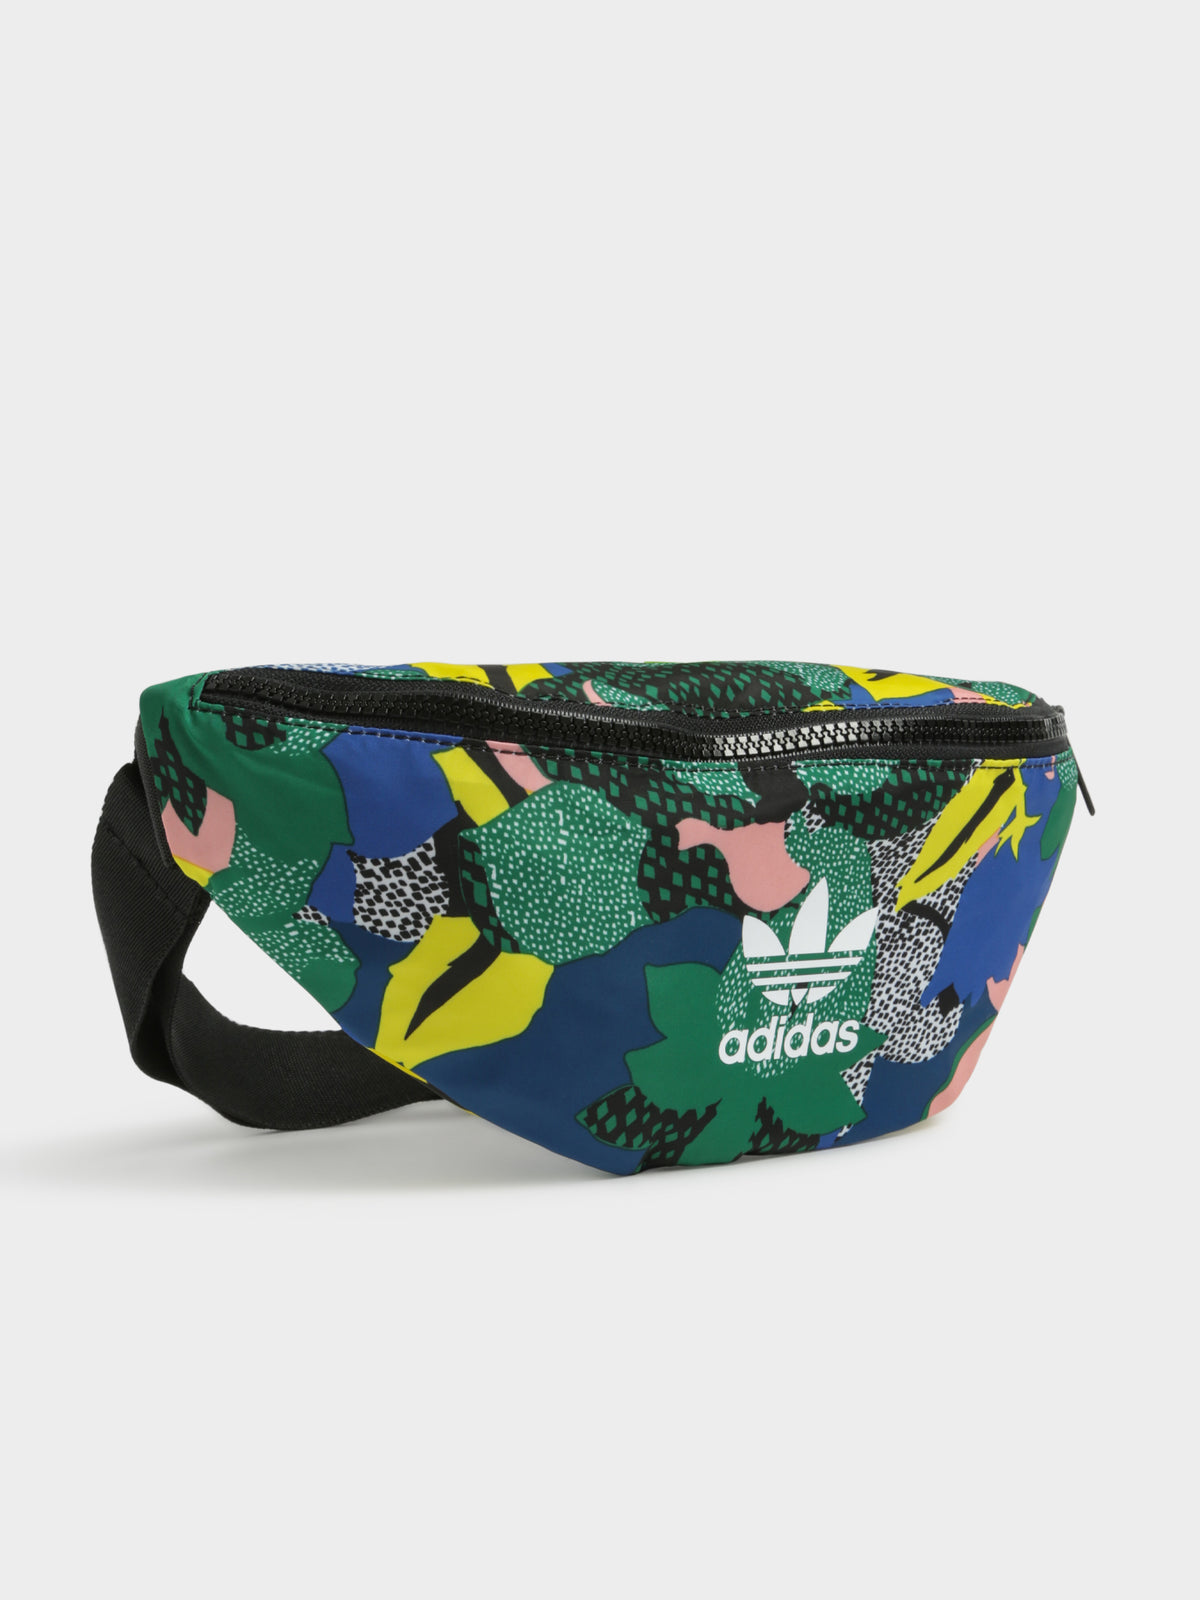 Her Studio London Waistbag in Green